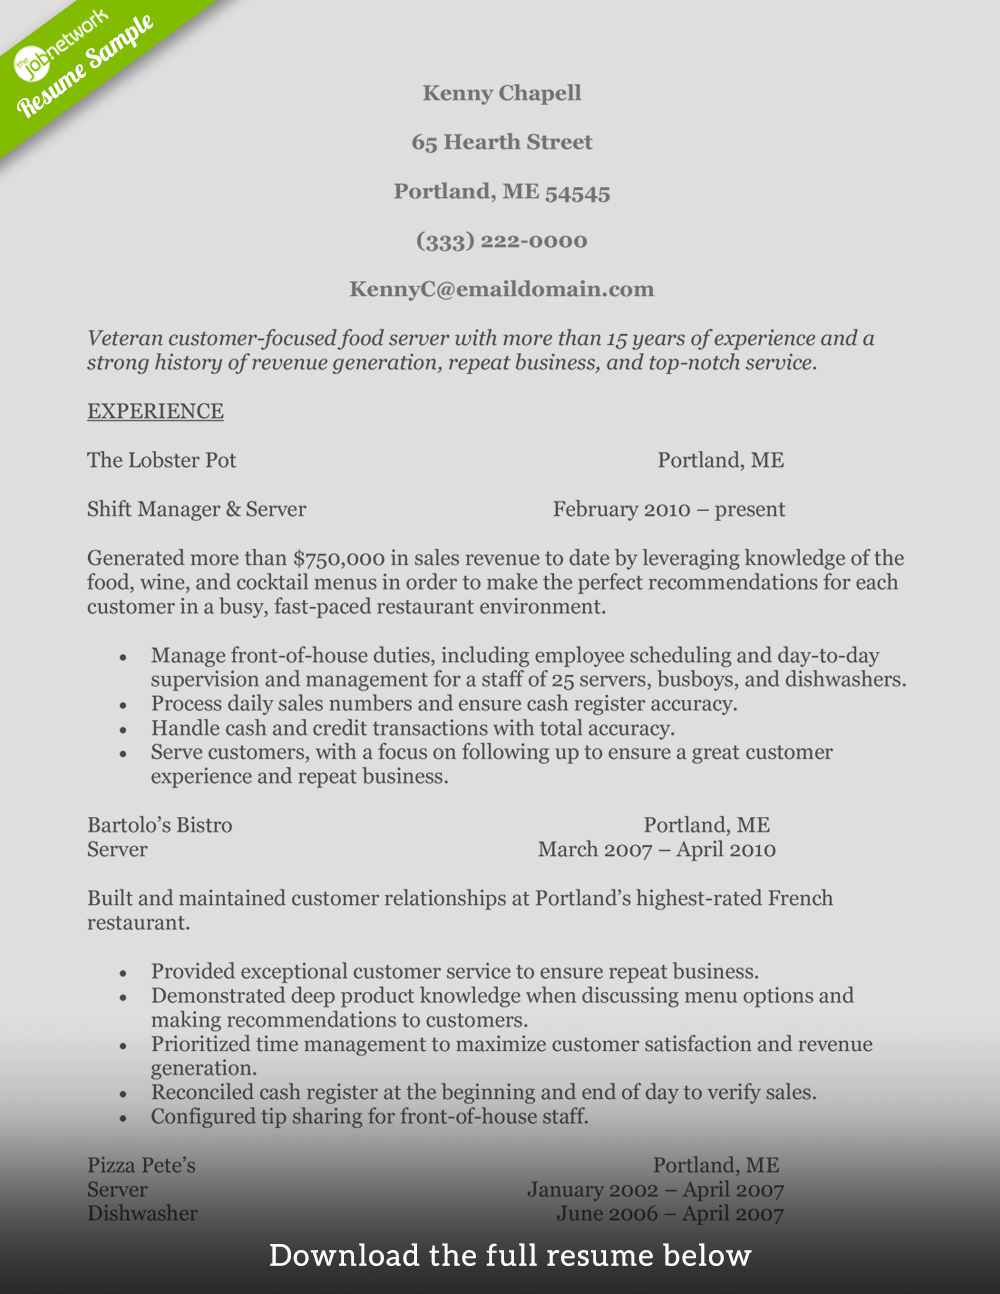 Resume Food Service How To Write A Perfect Food Service Resume Examples Included